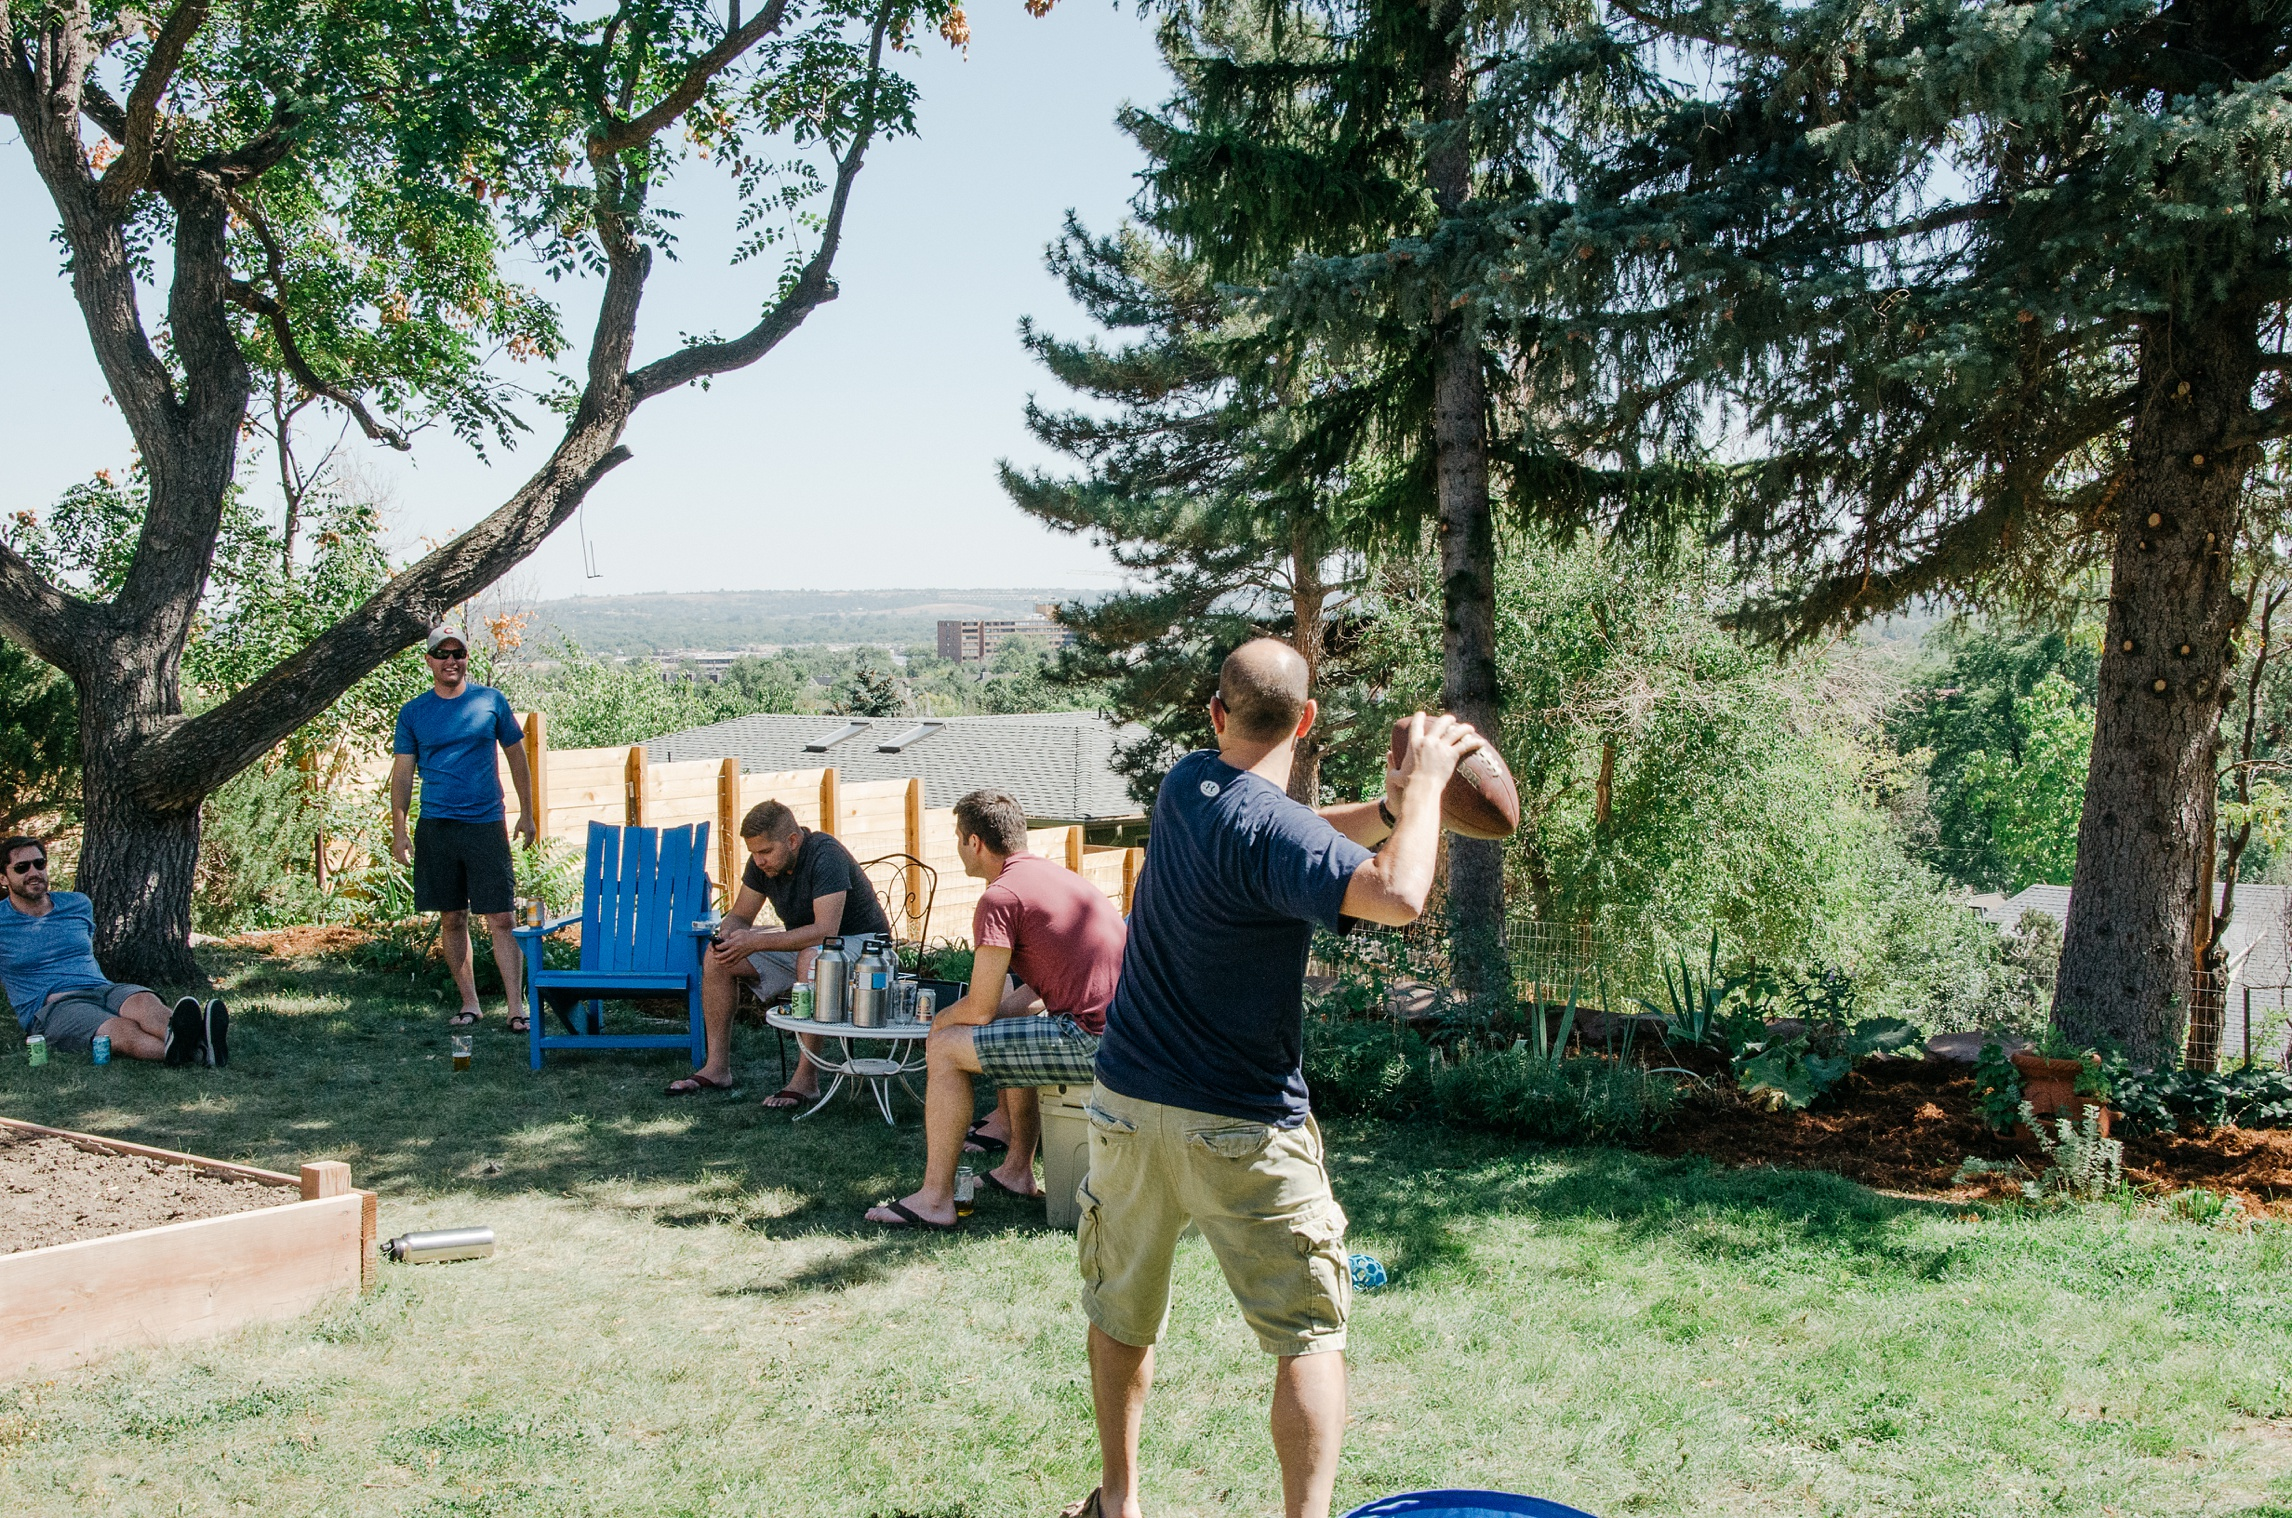 Brian and the groomsmen throw the football around before his wedding in Boulder, Colorado. Wedding photography by Max Salzburg of Sonja K Photography.